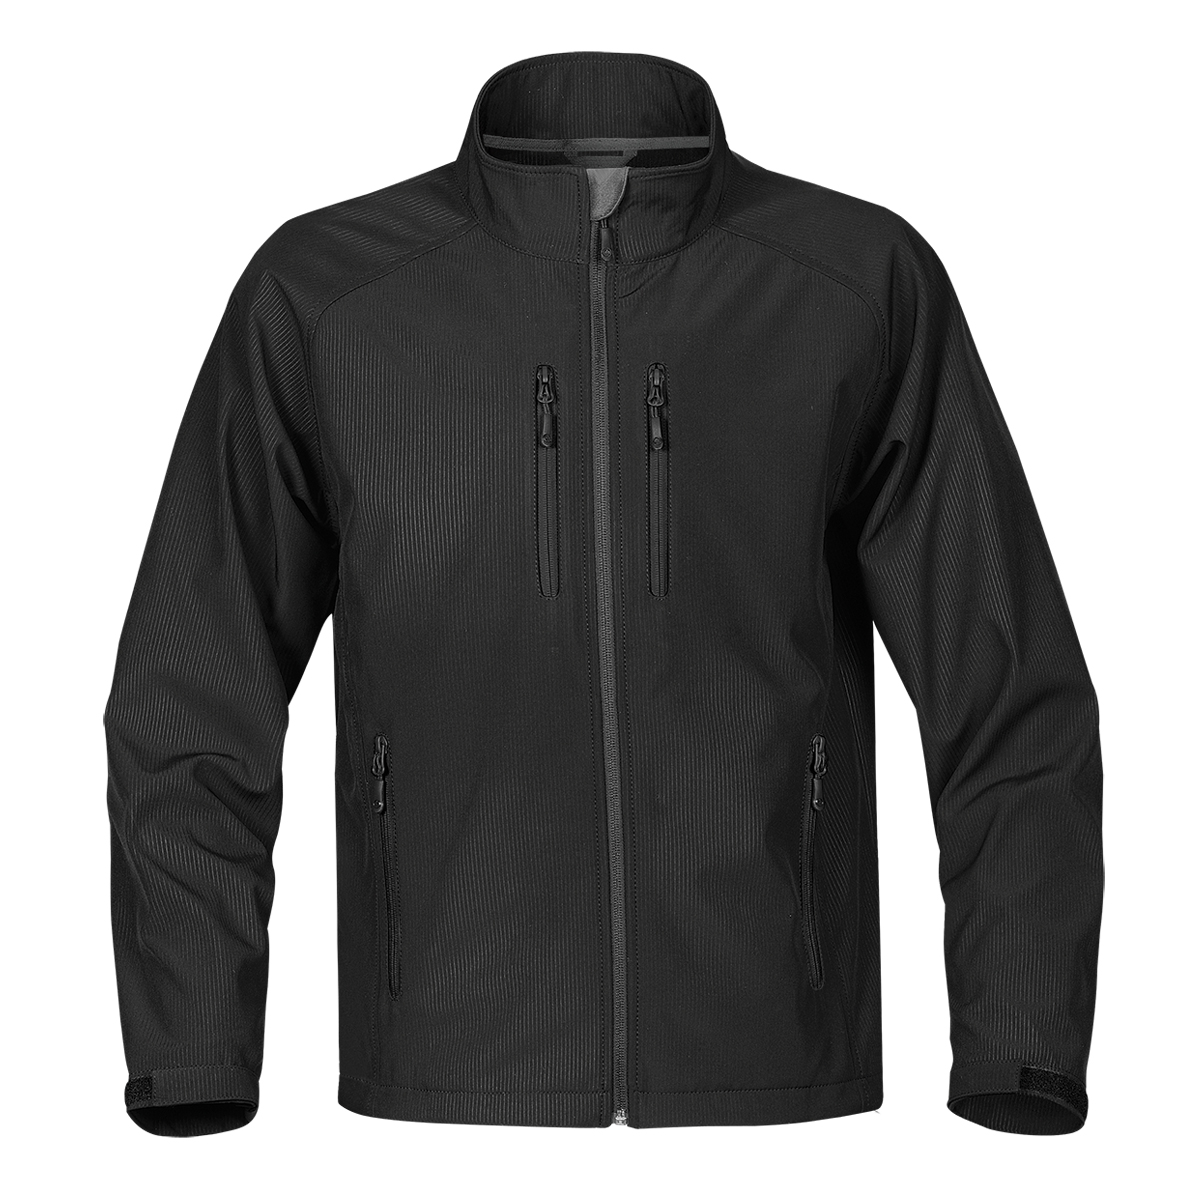 Stormtech Men's Elipse Softshell